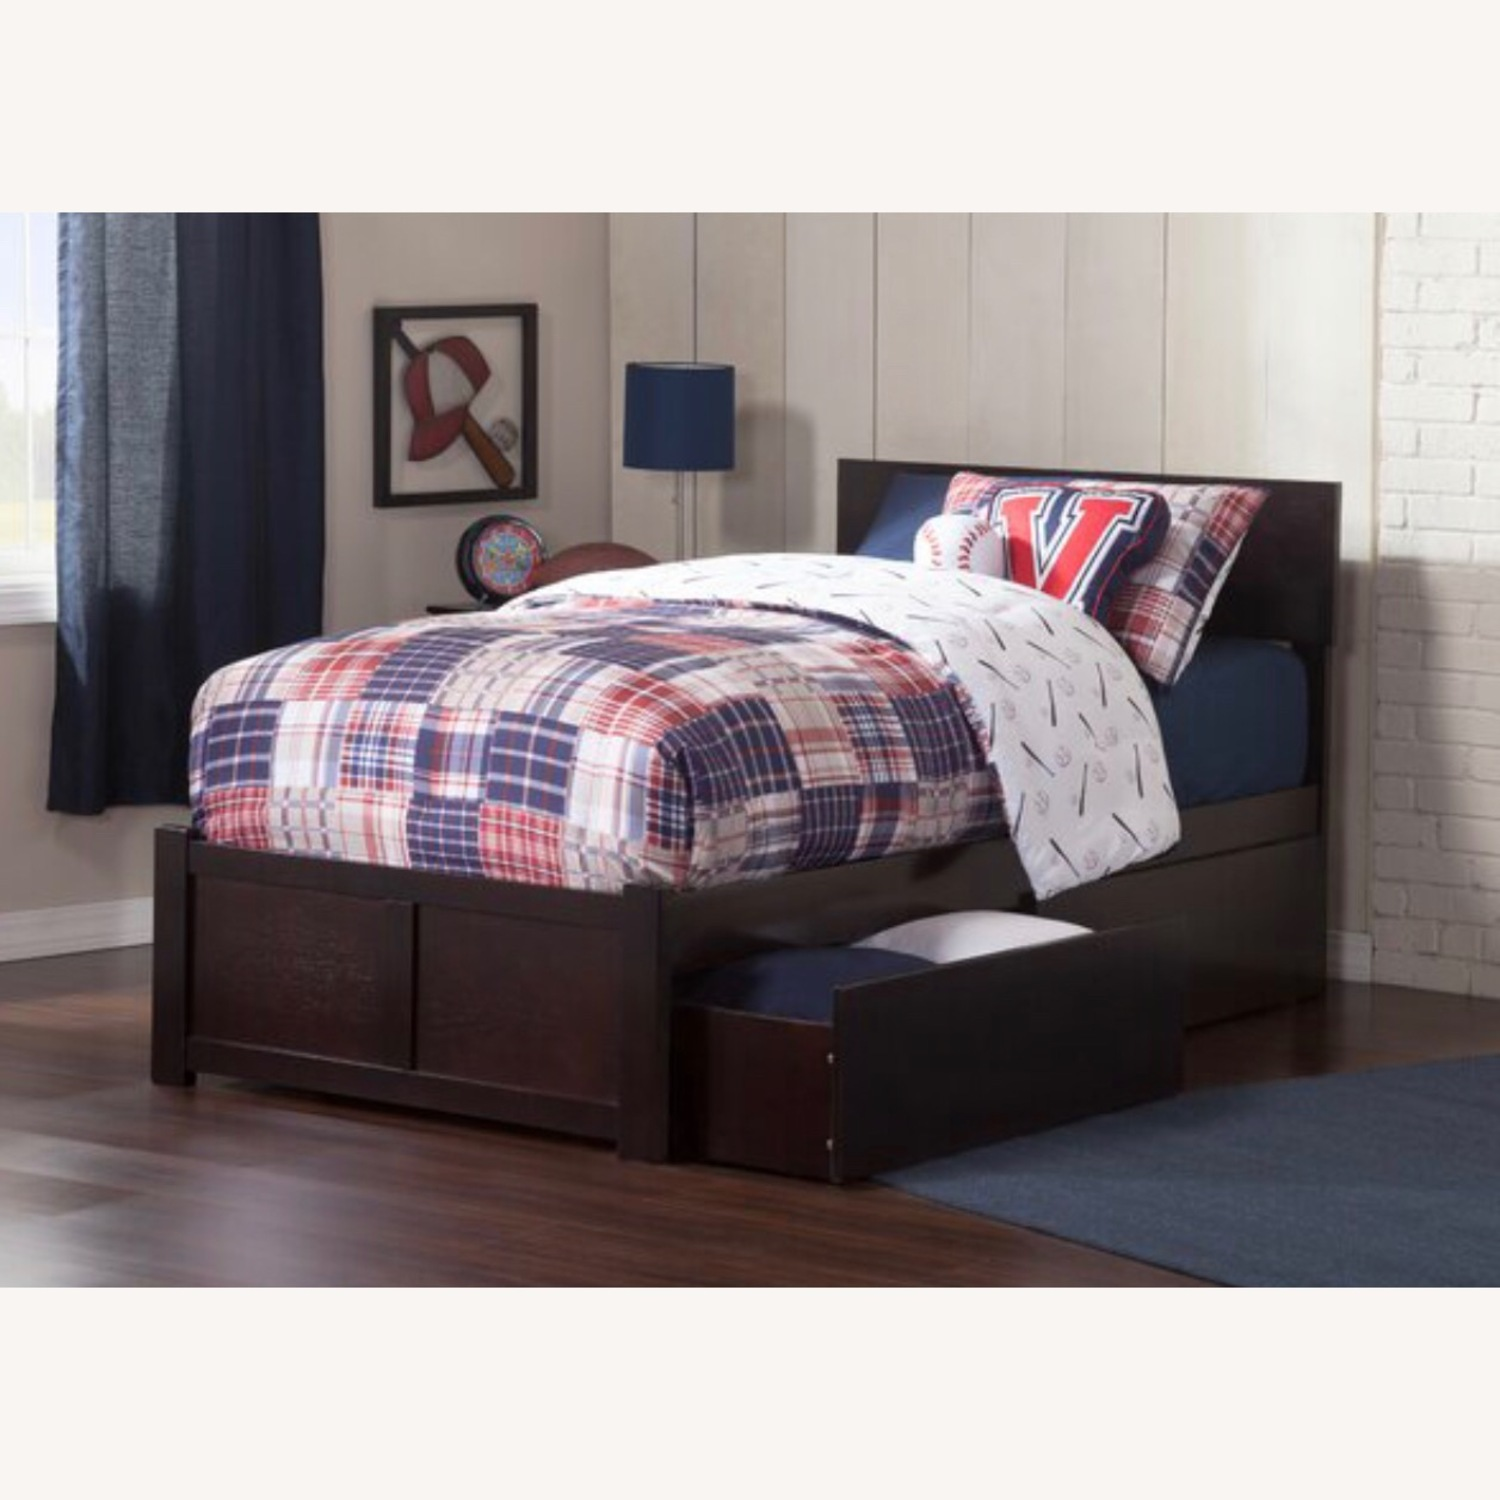 Full size bed in ESPRESSO wood w/drawers or trundle - image-1